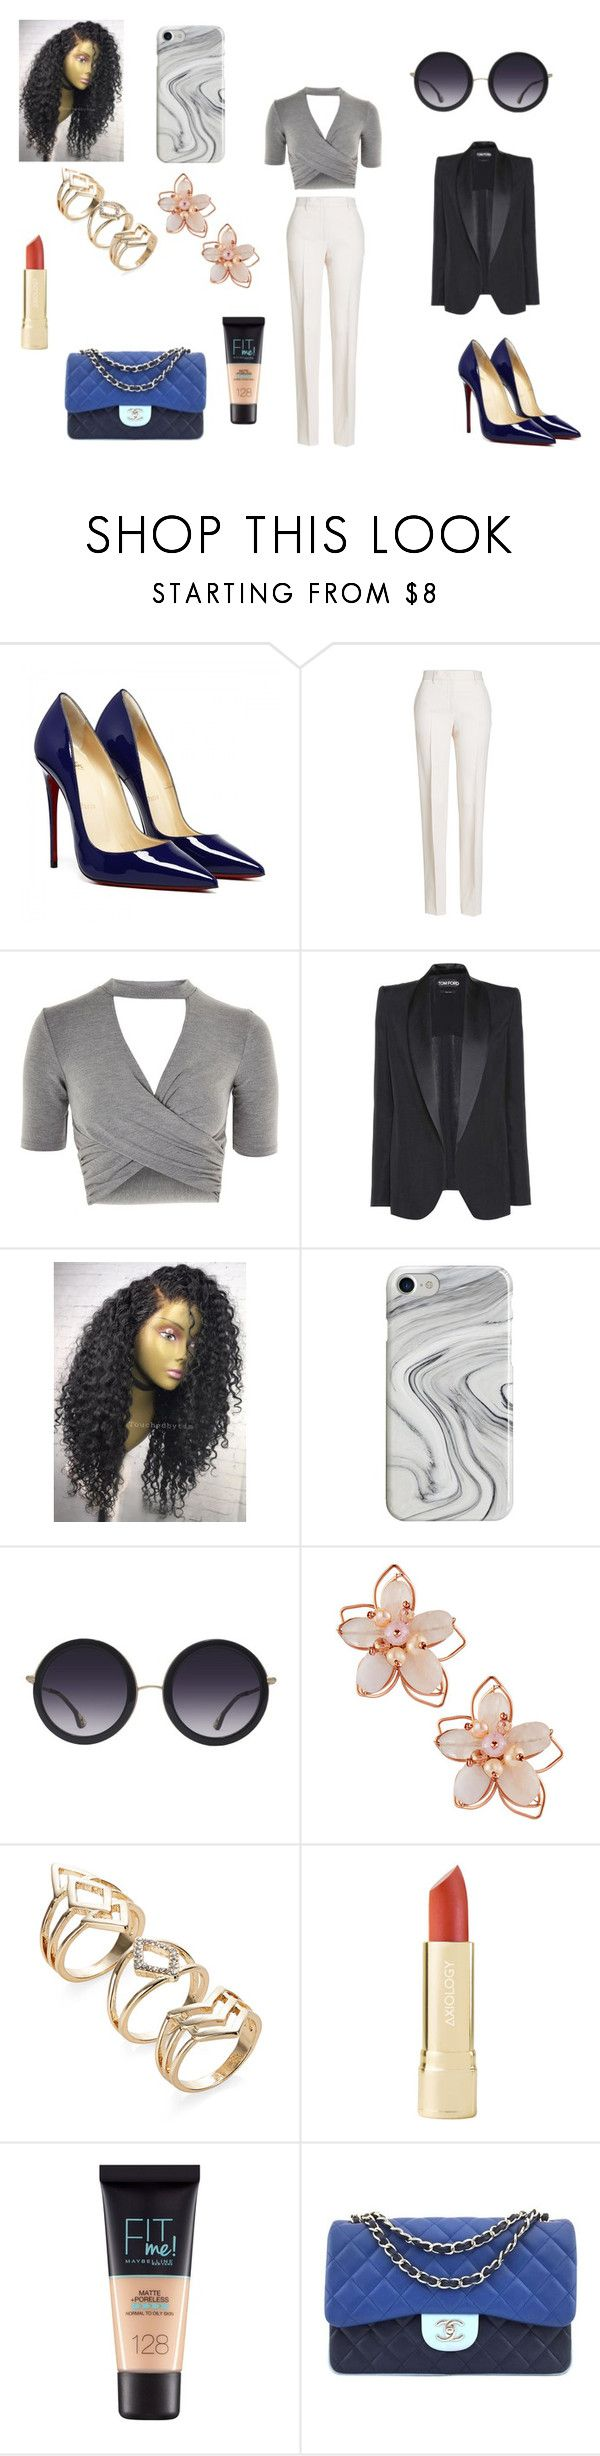 """""""Sans titre #2358"""" by amandine-collet on Polyvore featuring mode, Jil Sander, Topshop, Tom Ford, Recover, Alice + Olivia, NAKAMOL, Maybelline et Chanel"""